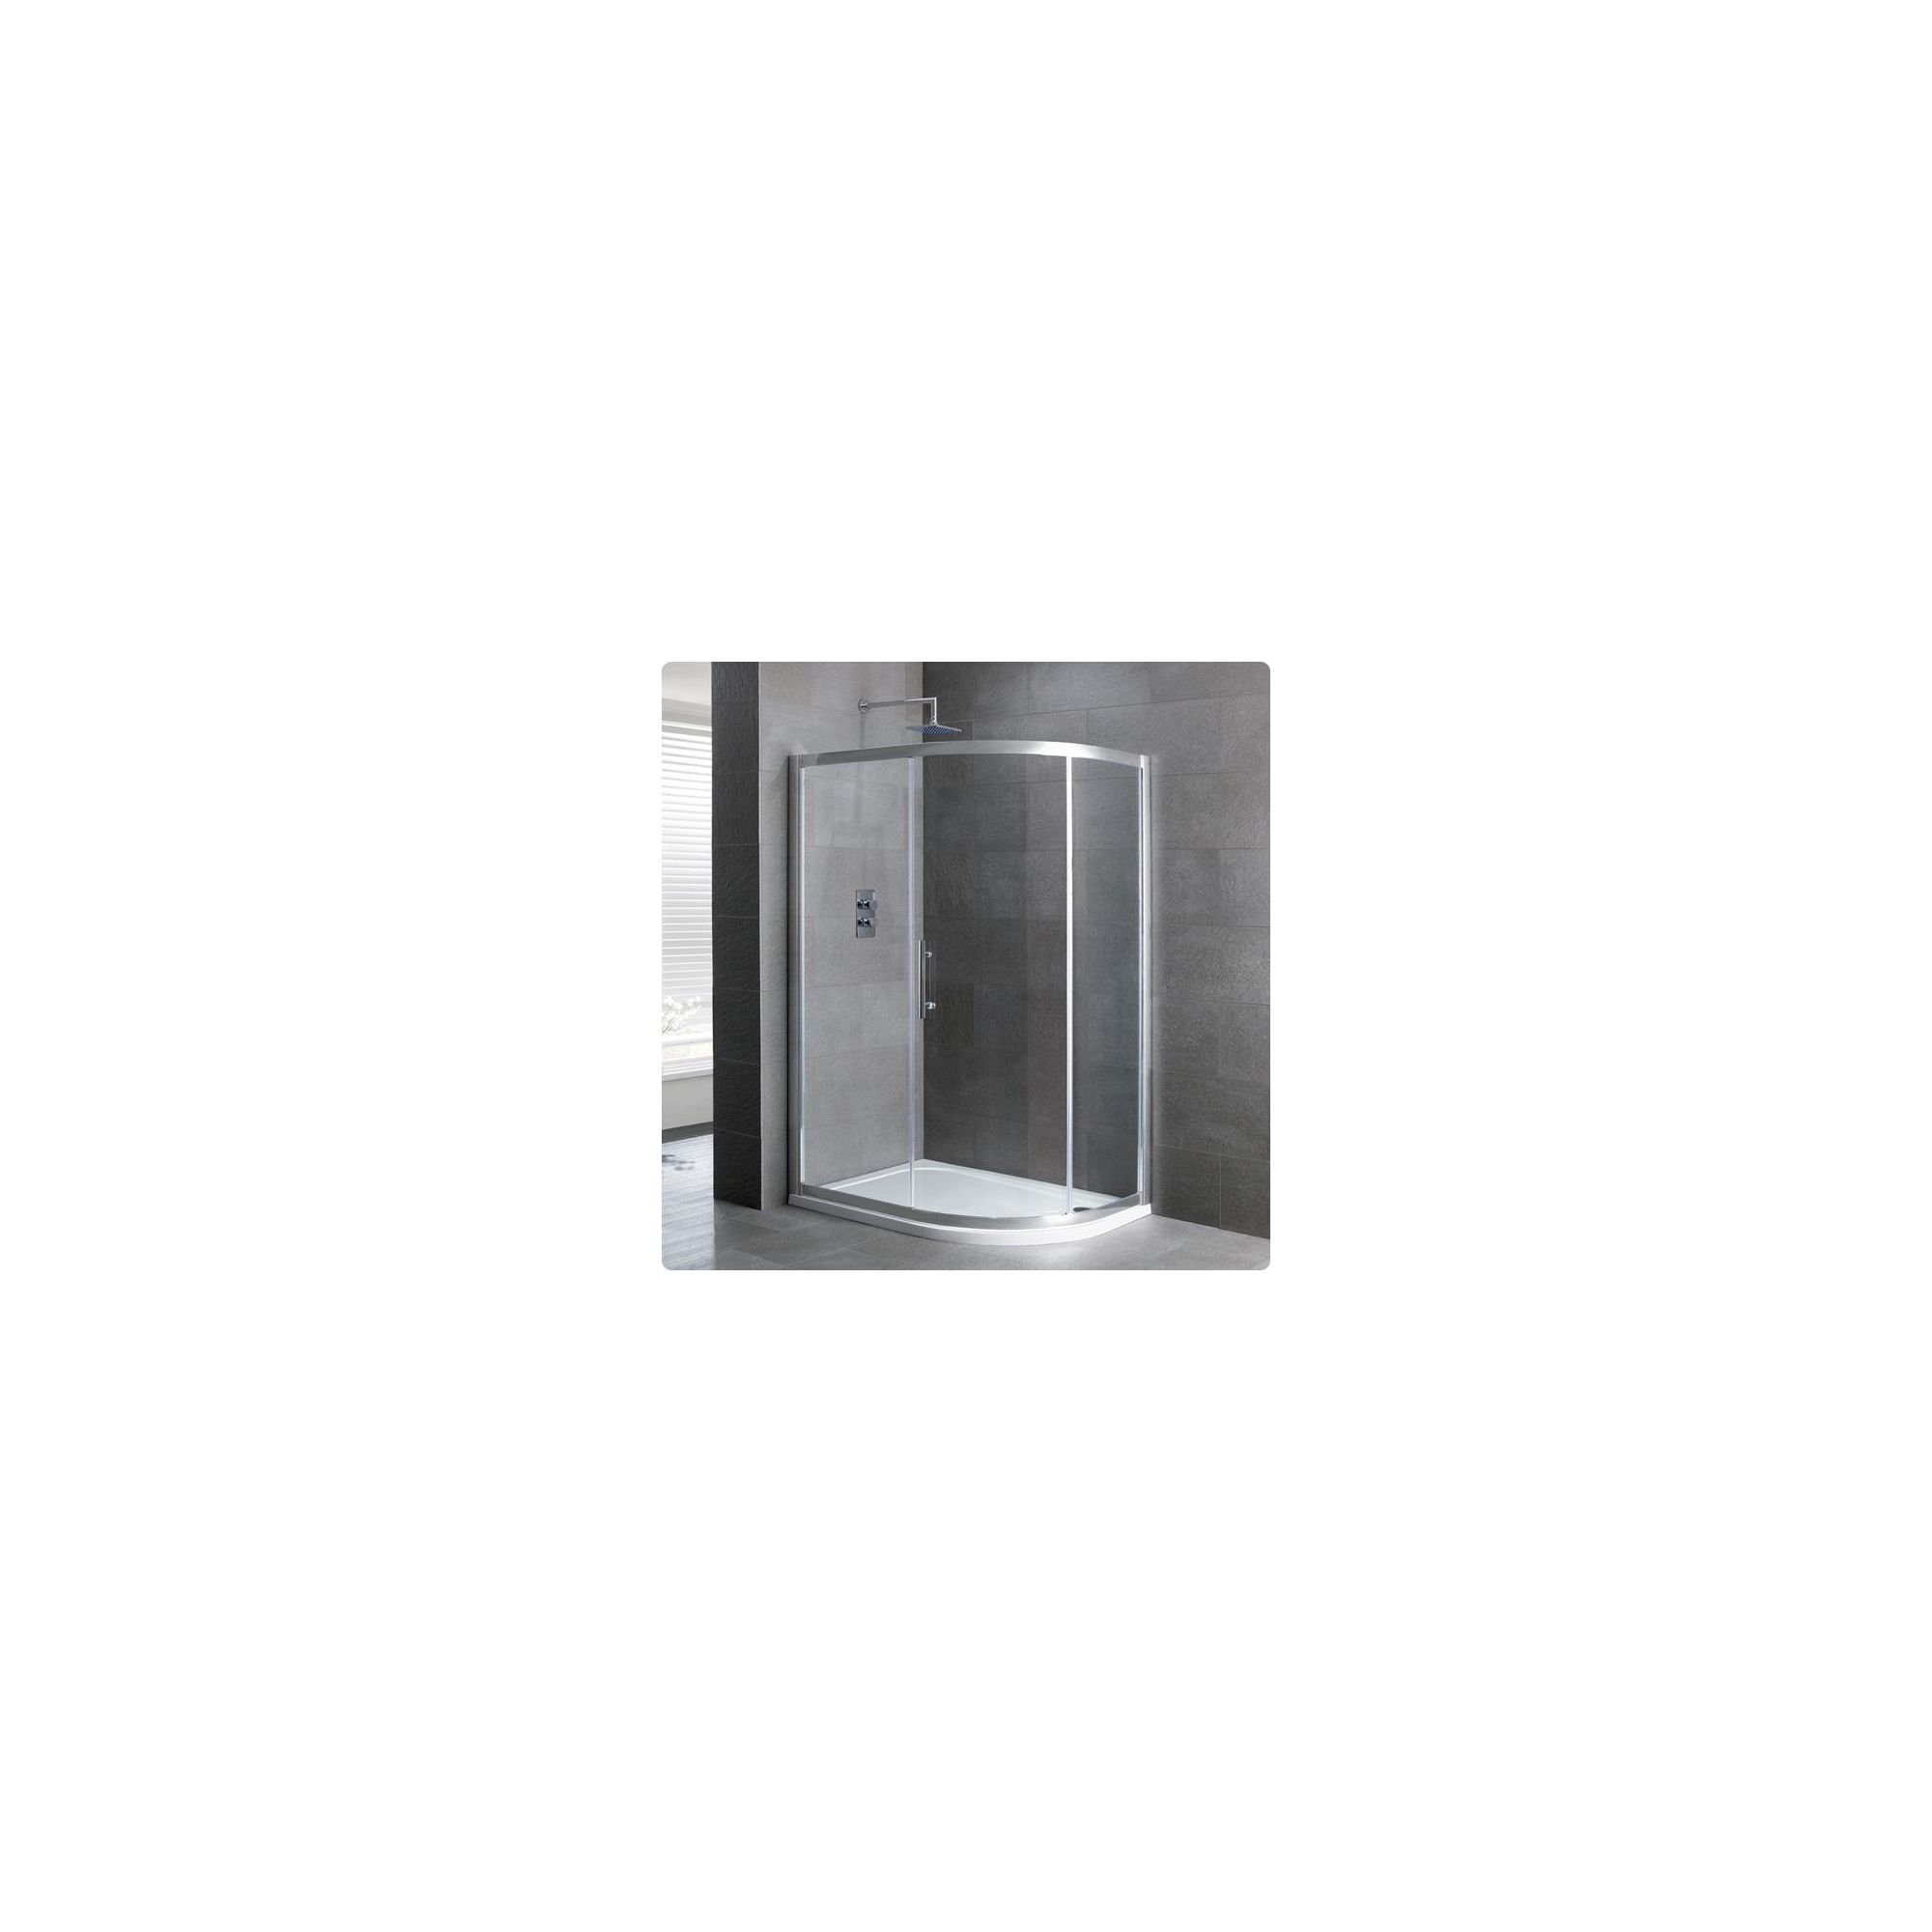 Duchy Select Silver 1 Door Offset Quadrant Shower Enclosure 1000mm x 760mm, Standard Tray, 6mm Glass at Tesco Direct